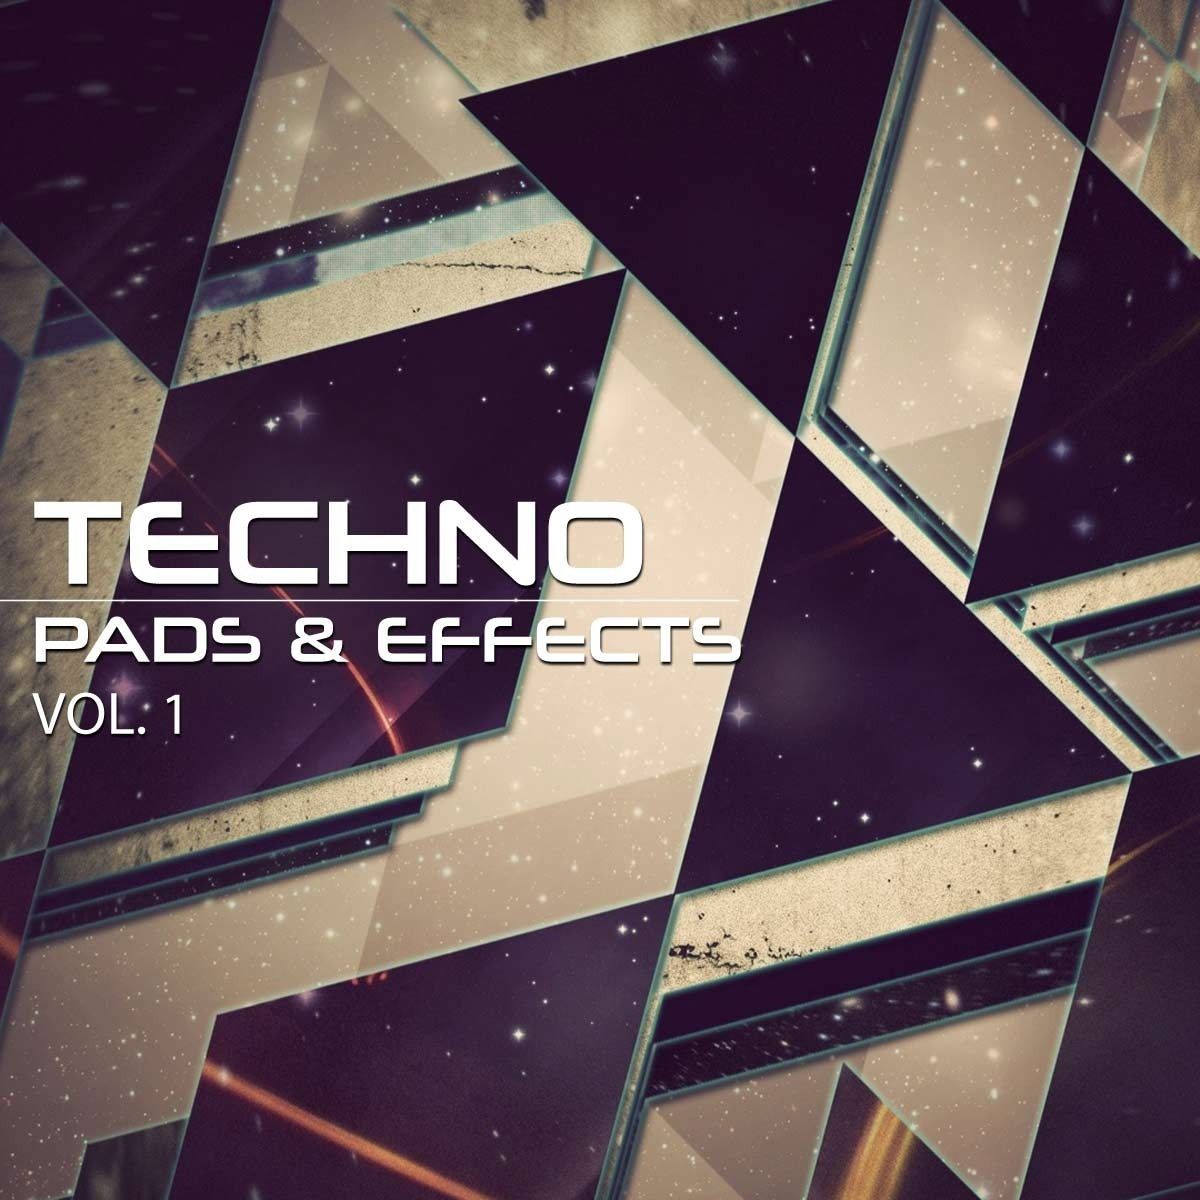 Techno Pads Effects Vol 1